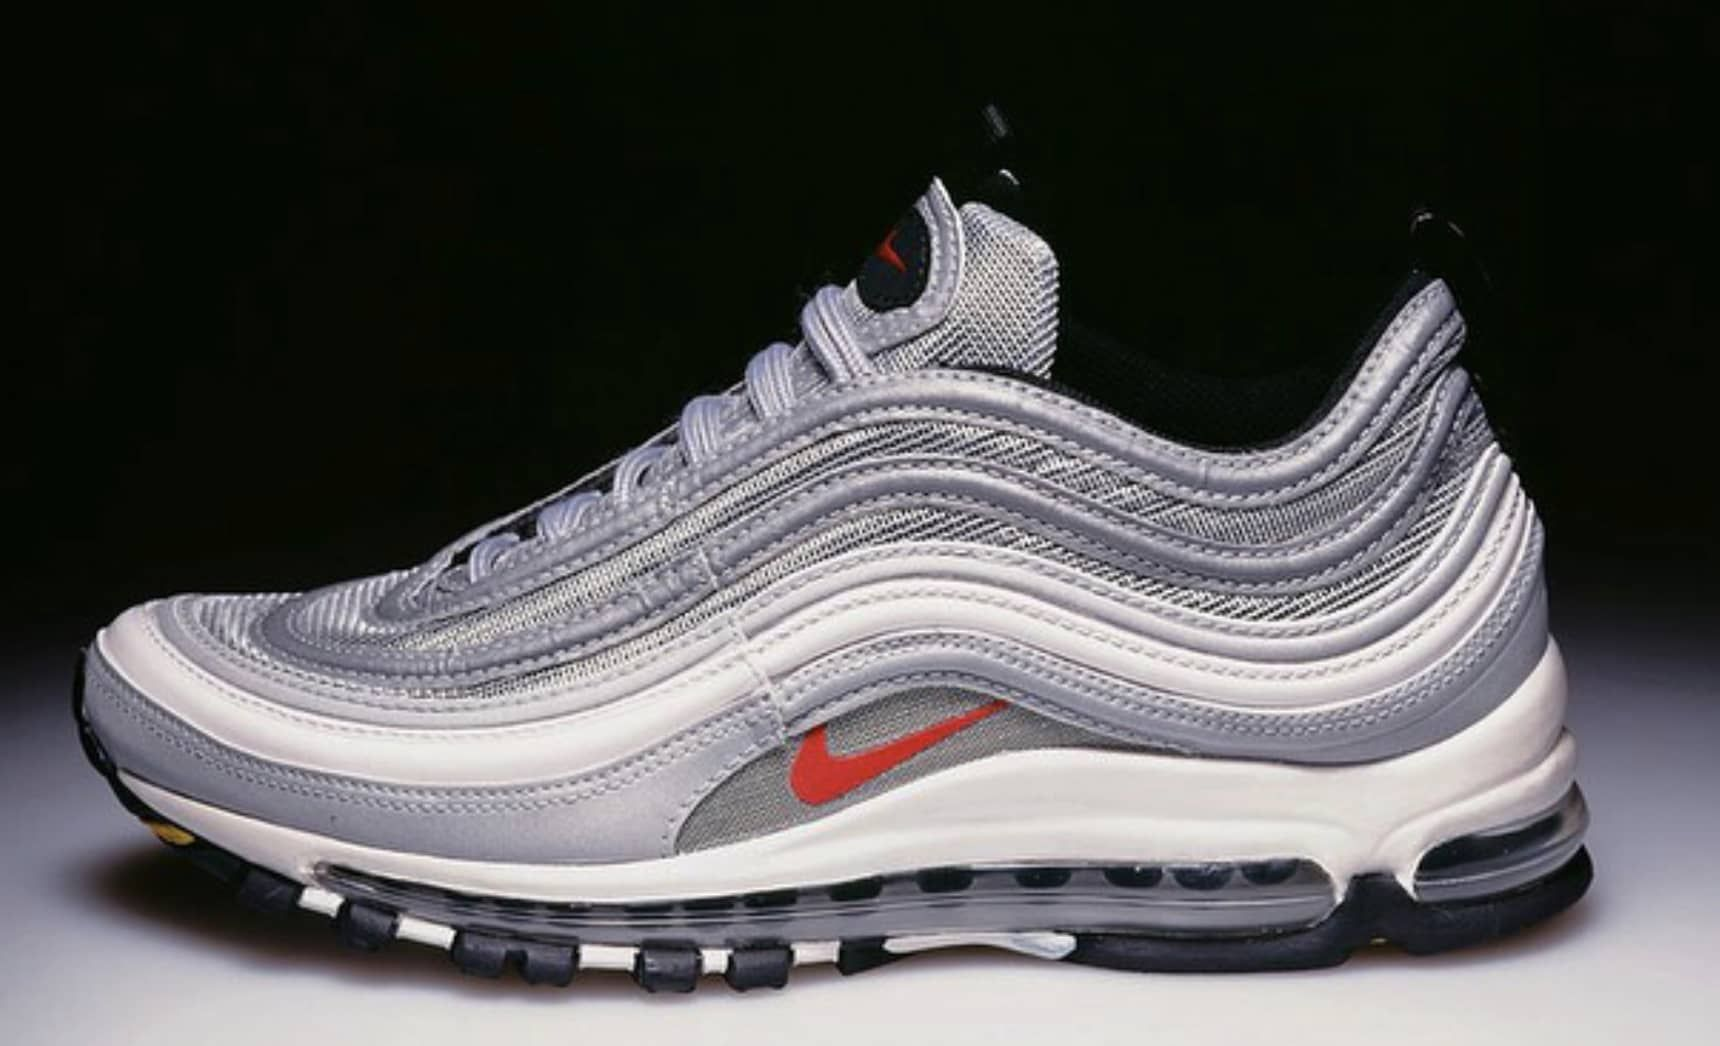 best service 6fad2 0afa8 Nike Air Max 97 Designer Christian Tresser Shows Original  Silver Bullet   Sample   Sole Collector